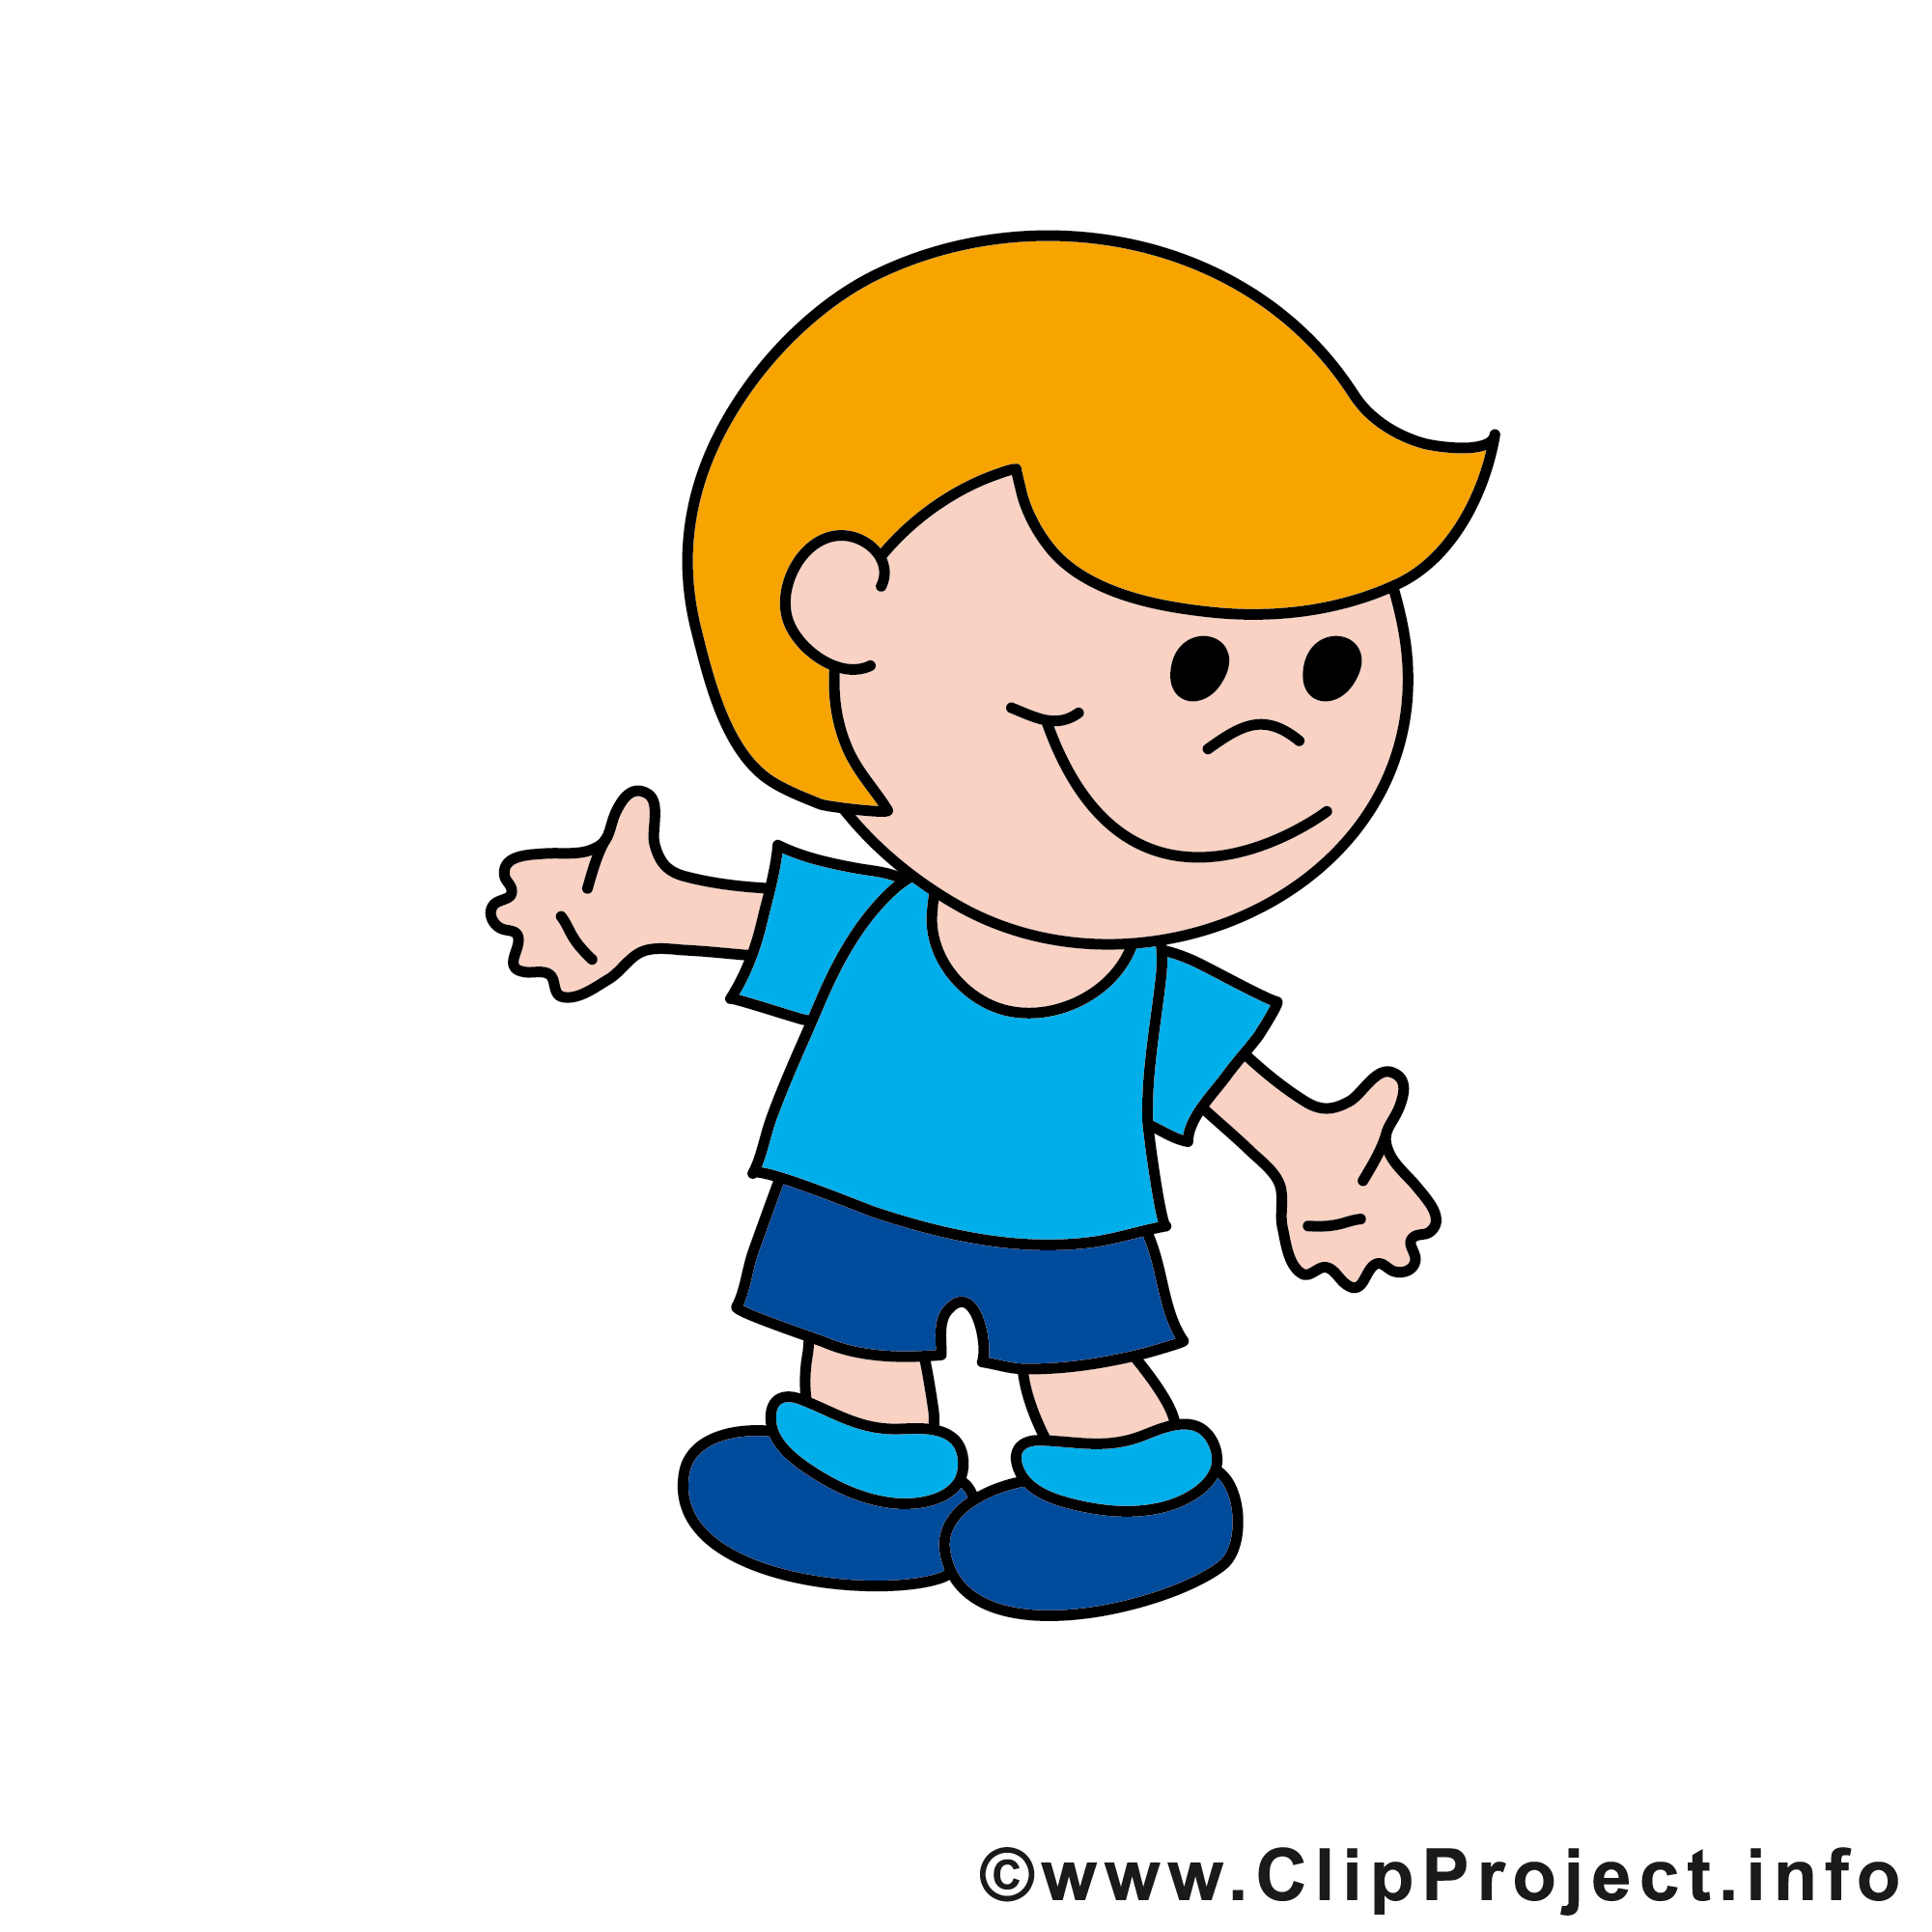 clipart junge 5 » clipart station